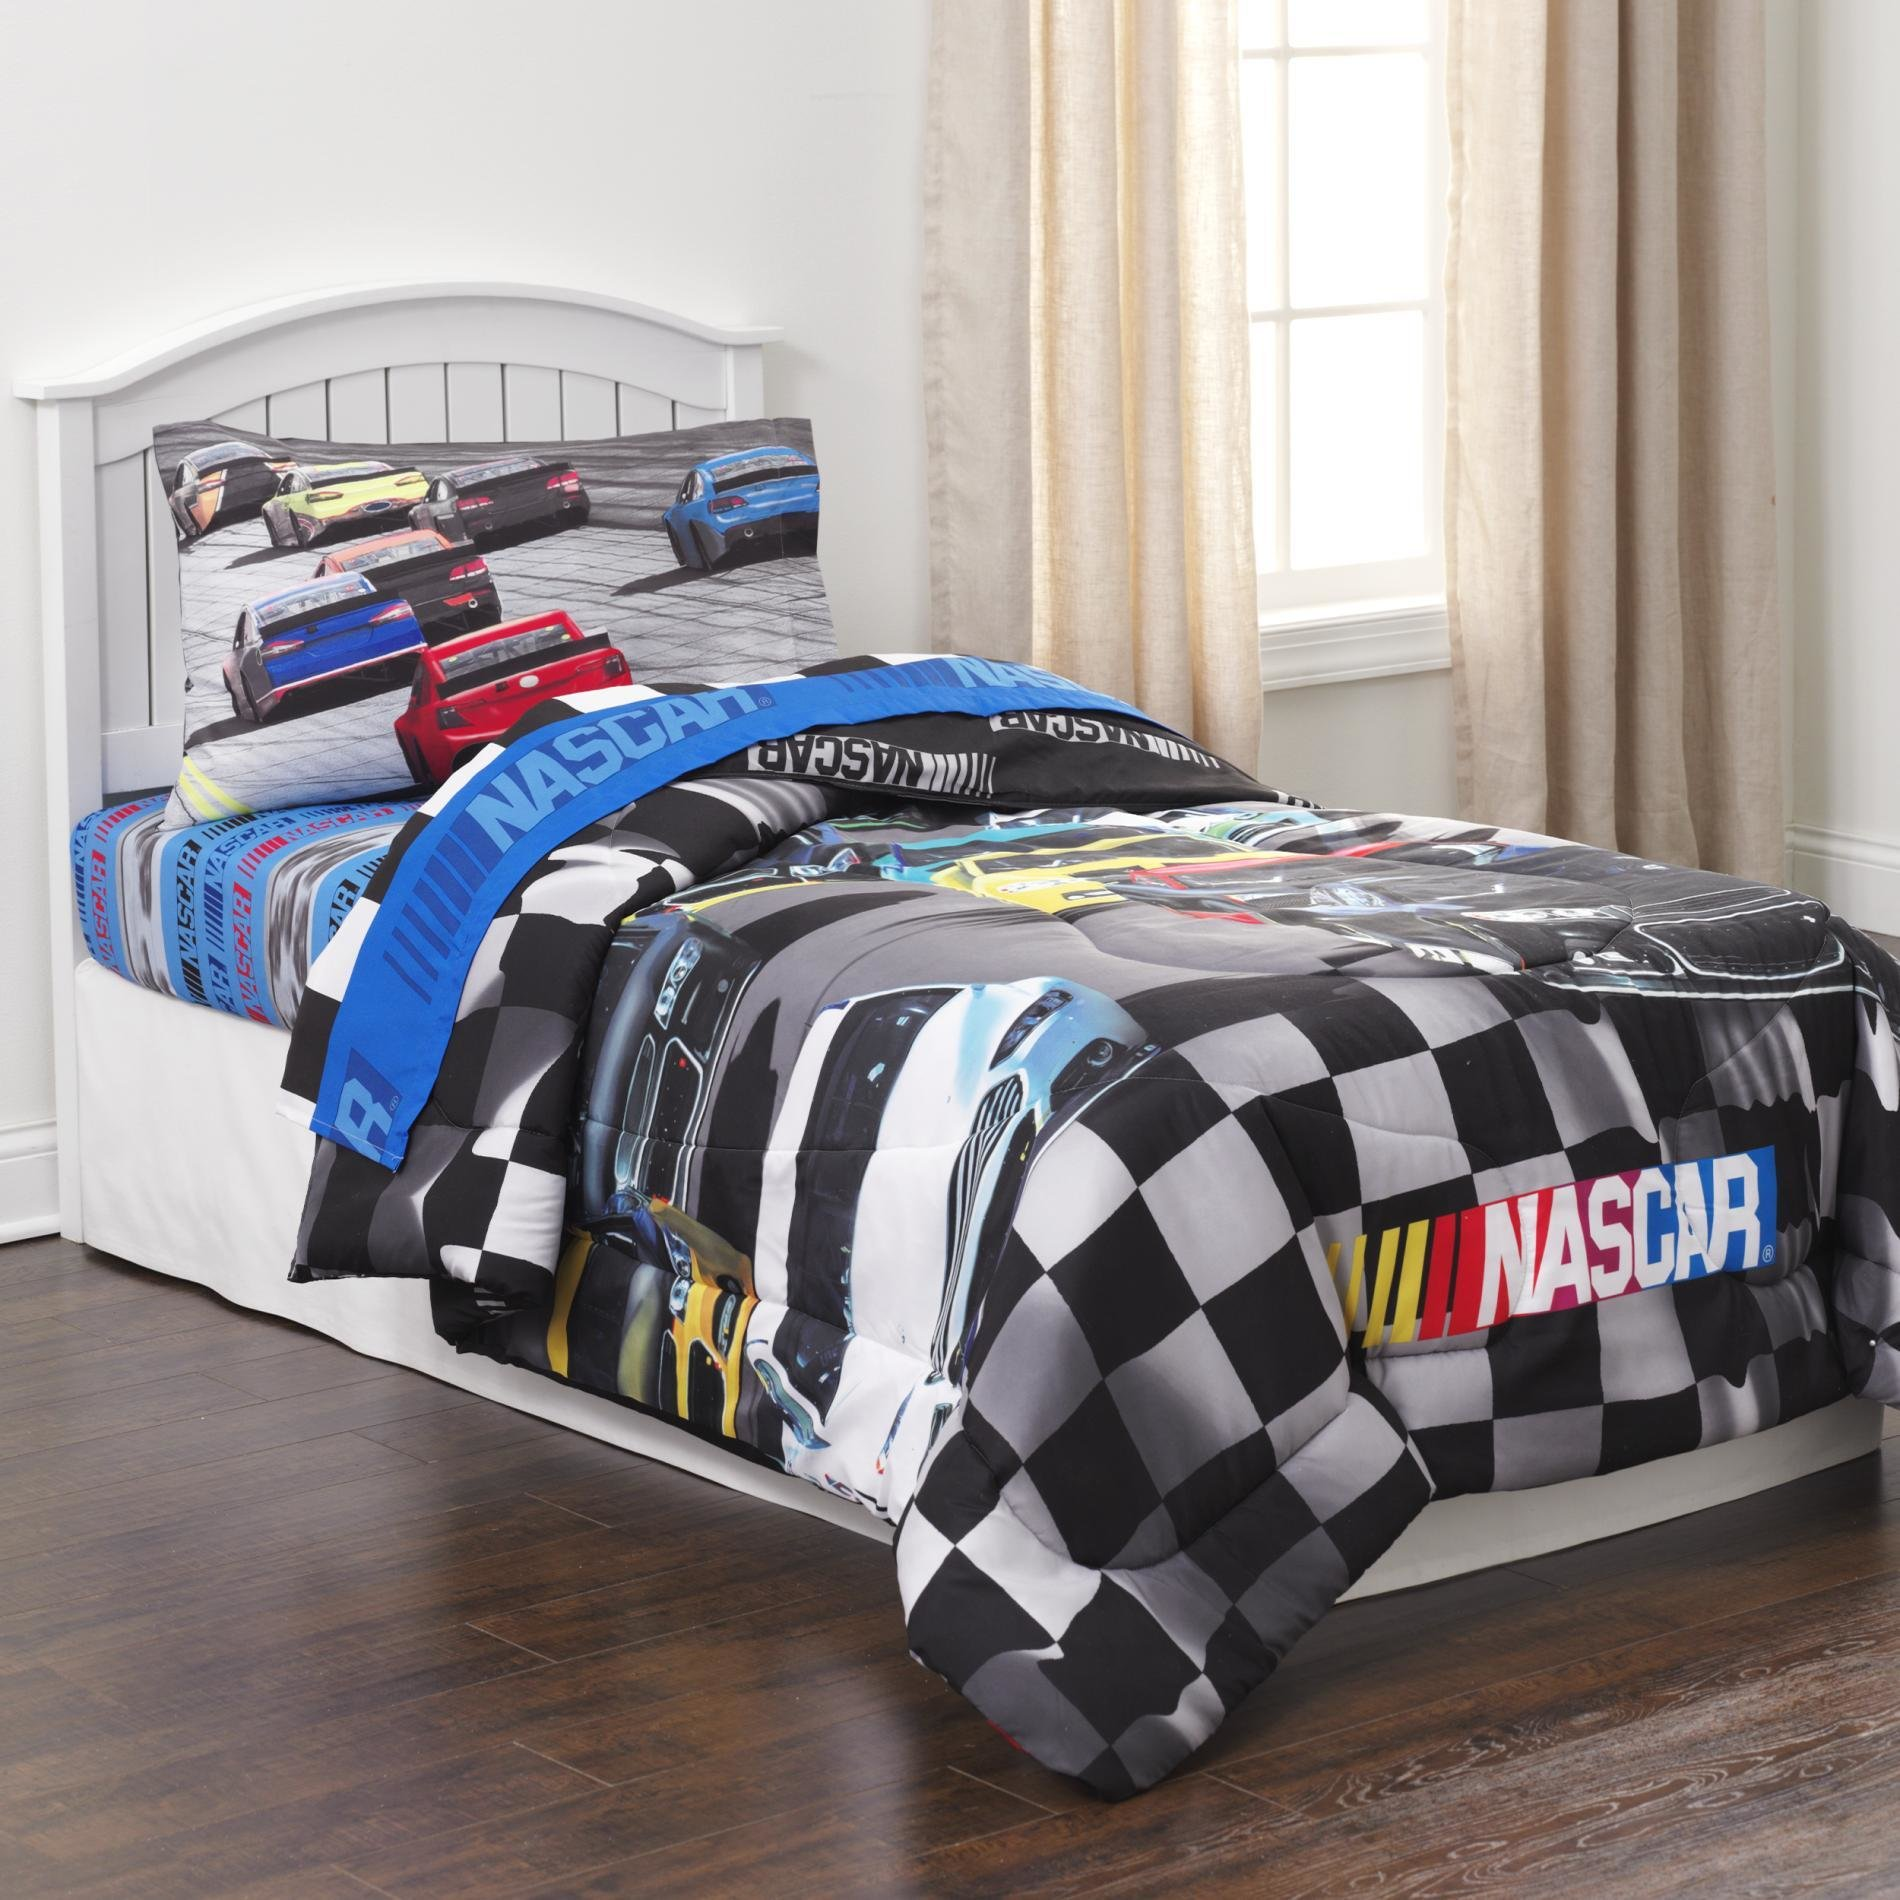 Best Nascar Bedding Totally Kids Totally Bedrooms Kids Bedroom Ideas With Pictures